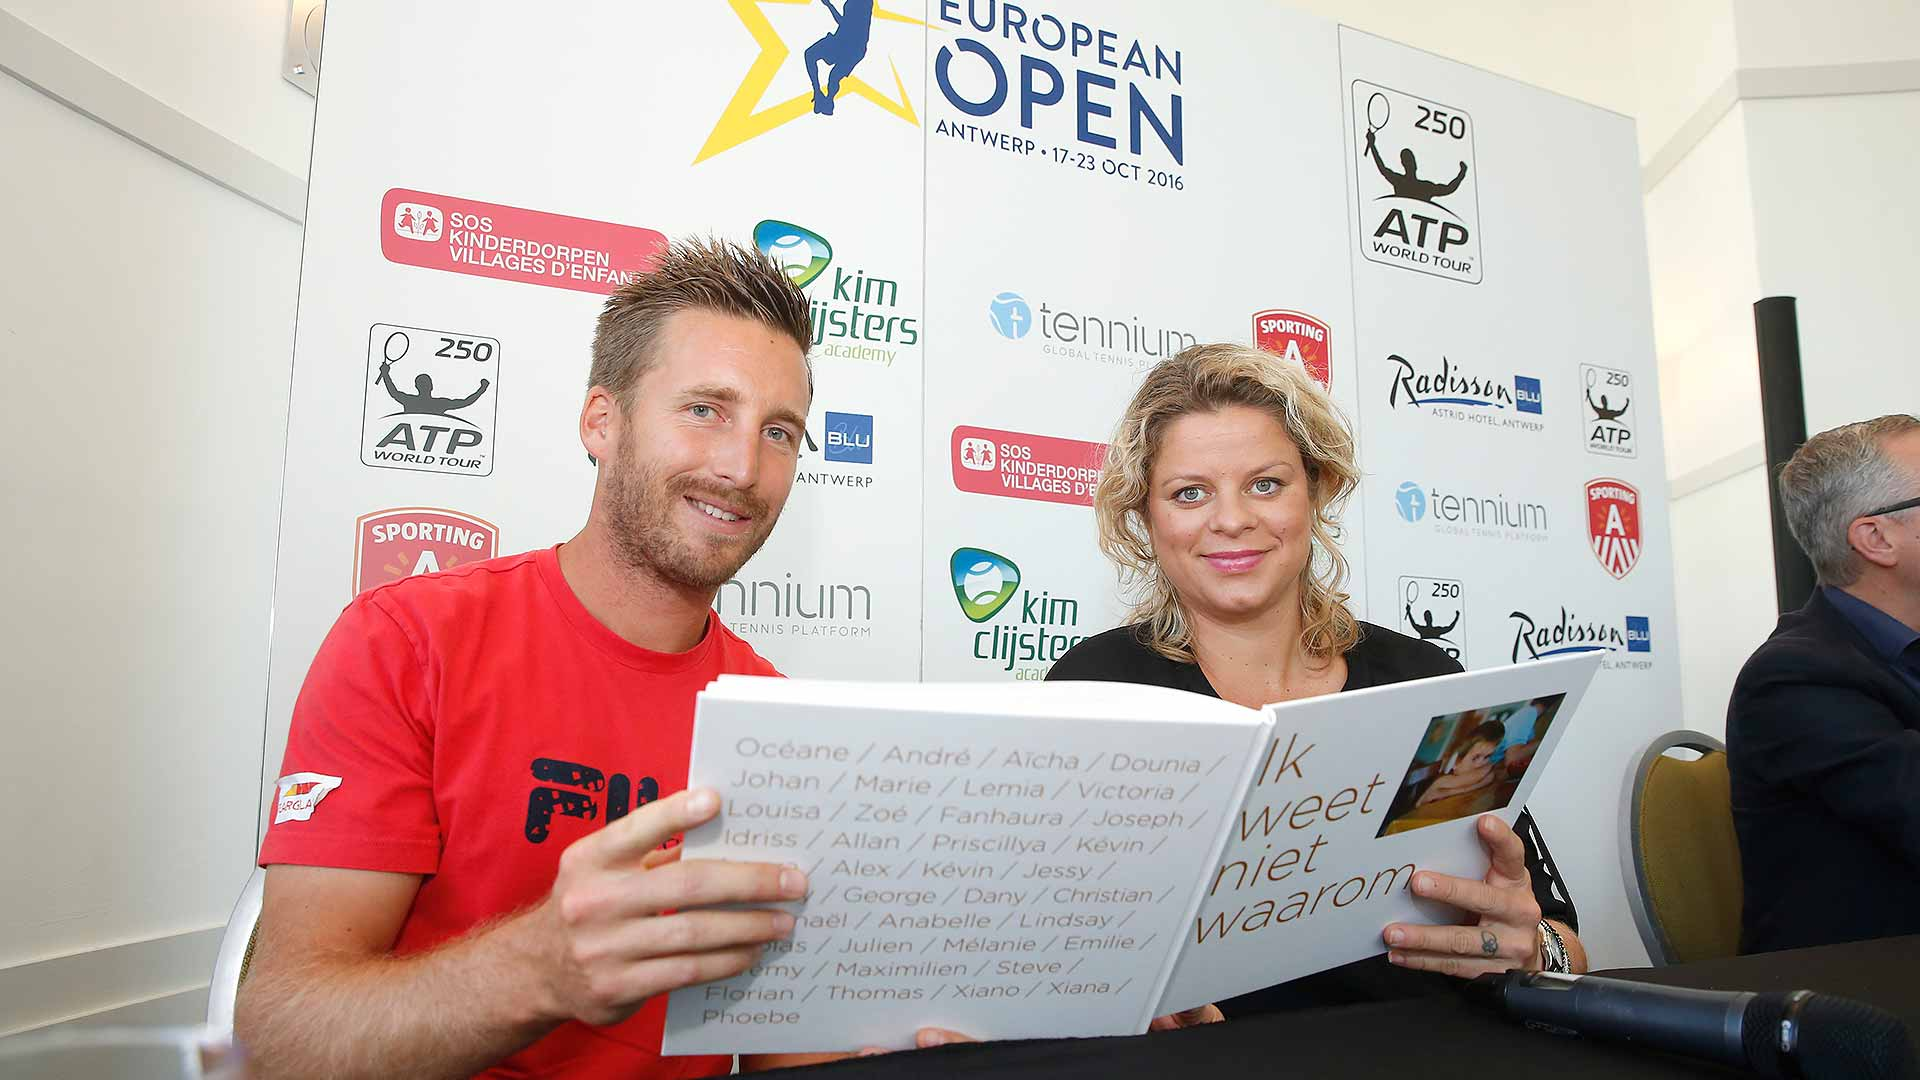 The European Open will host a Guiness World Record attempt for a good cause.